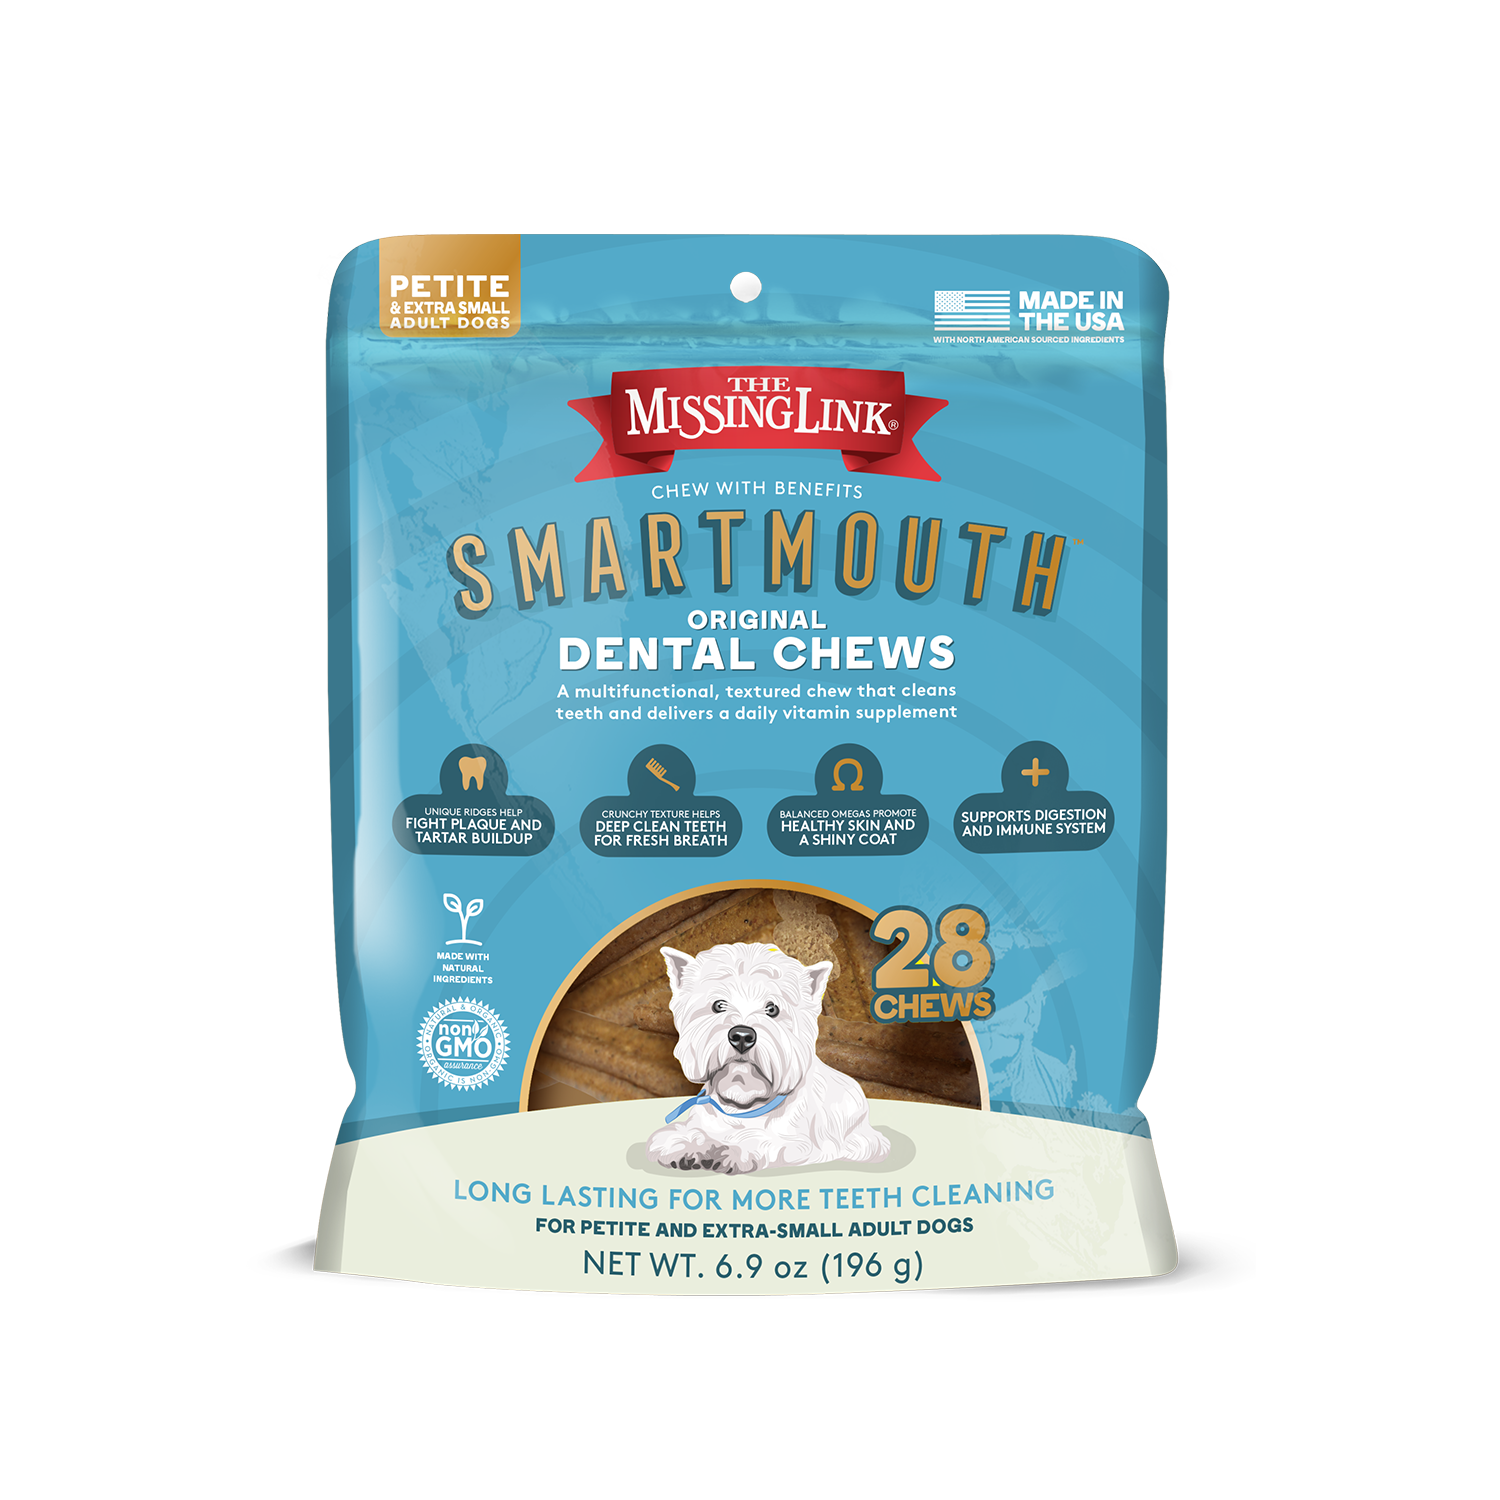 The Missing Link Smartmouth Petite/Extra Small Dental Dog Chews, 28-count